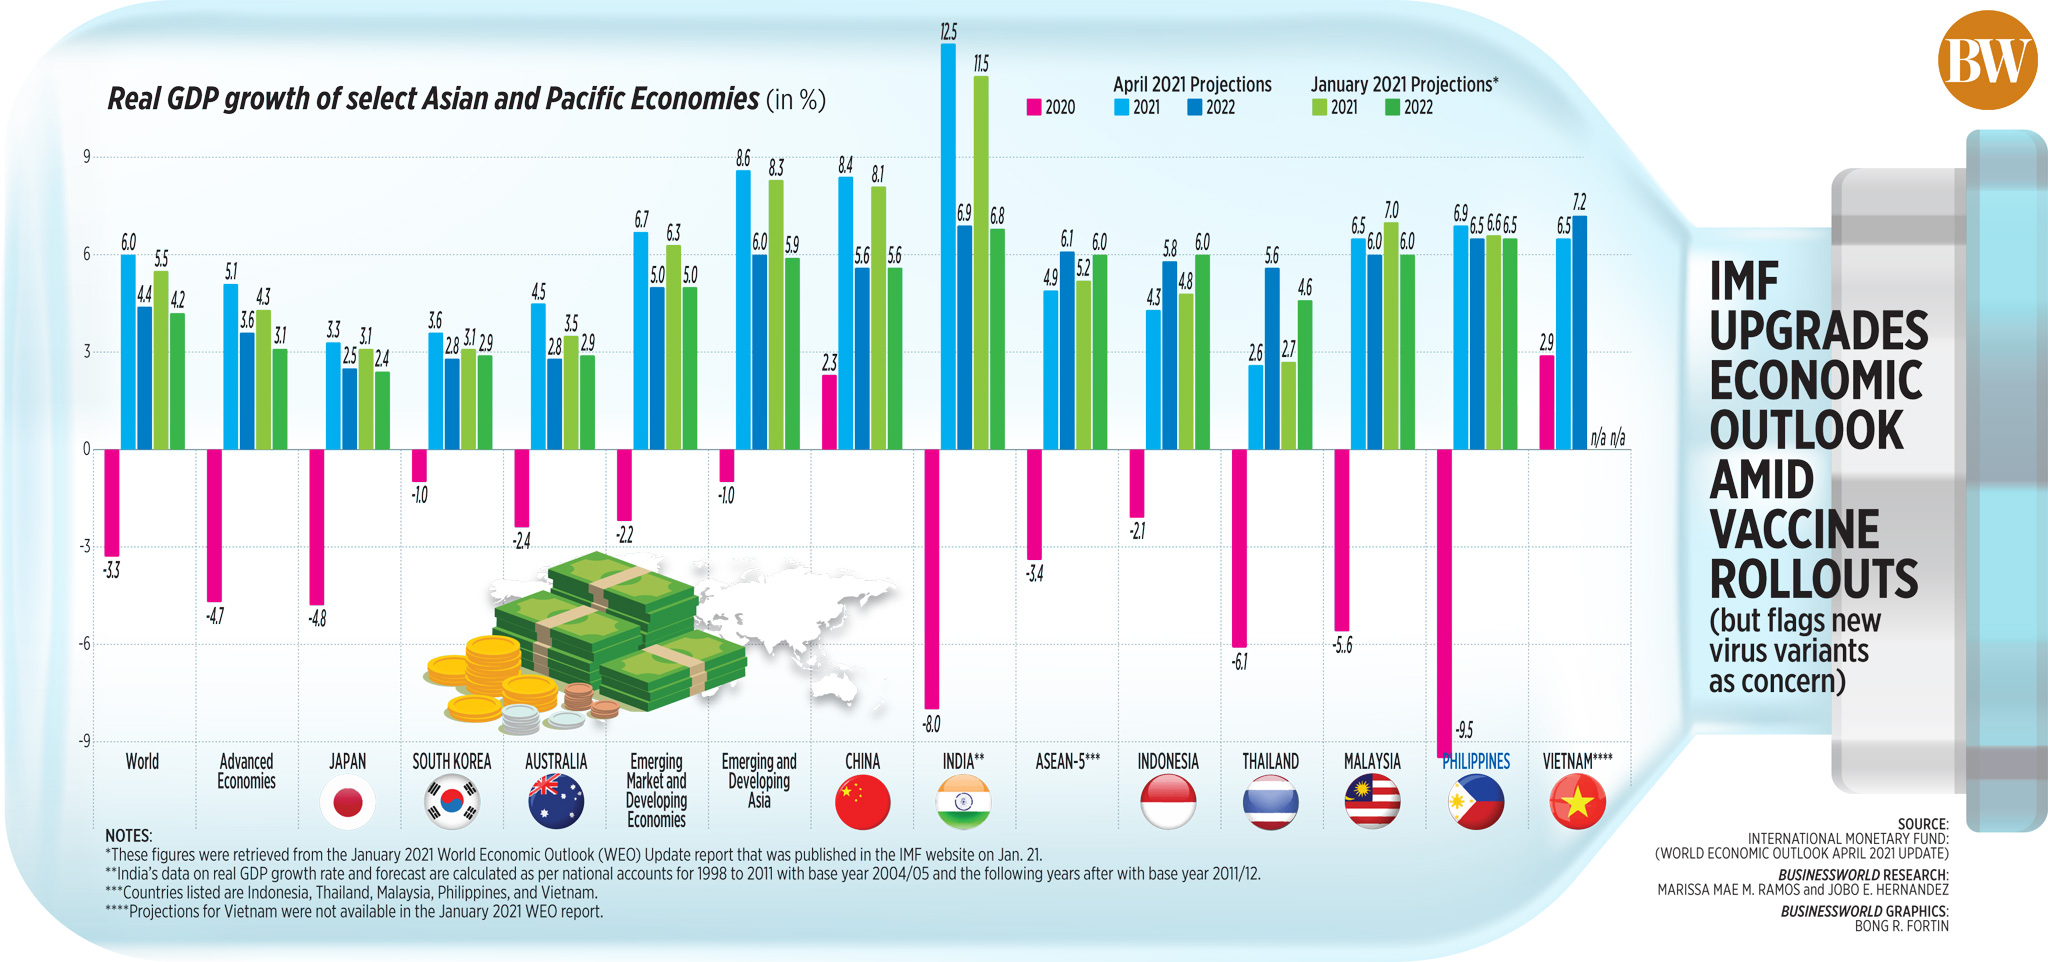 Real GDP growth of select Asian and Pacific Economies